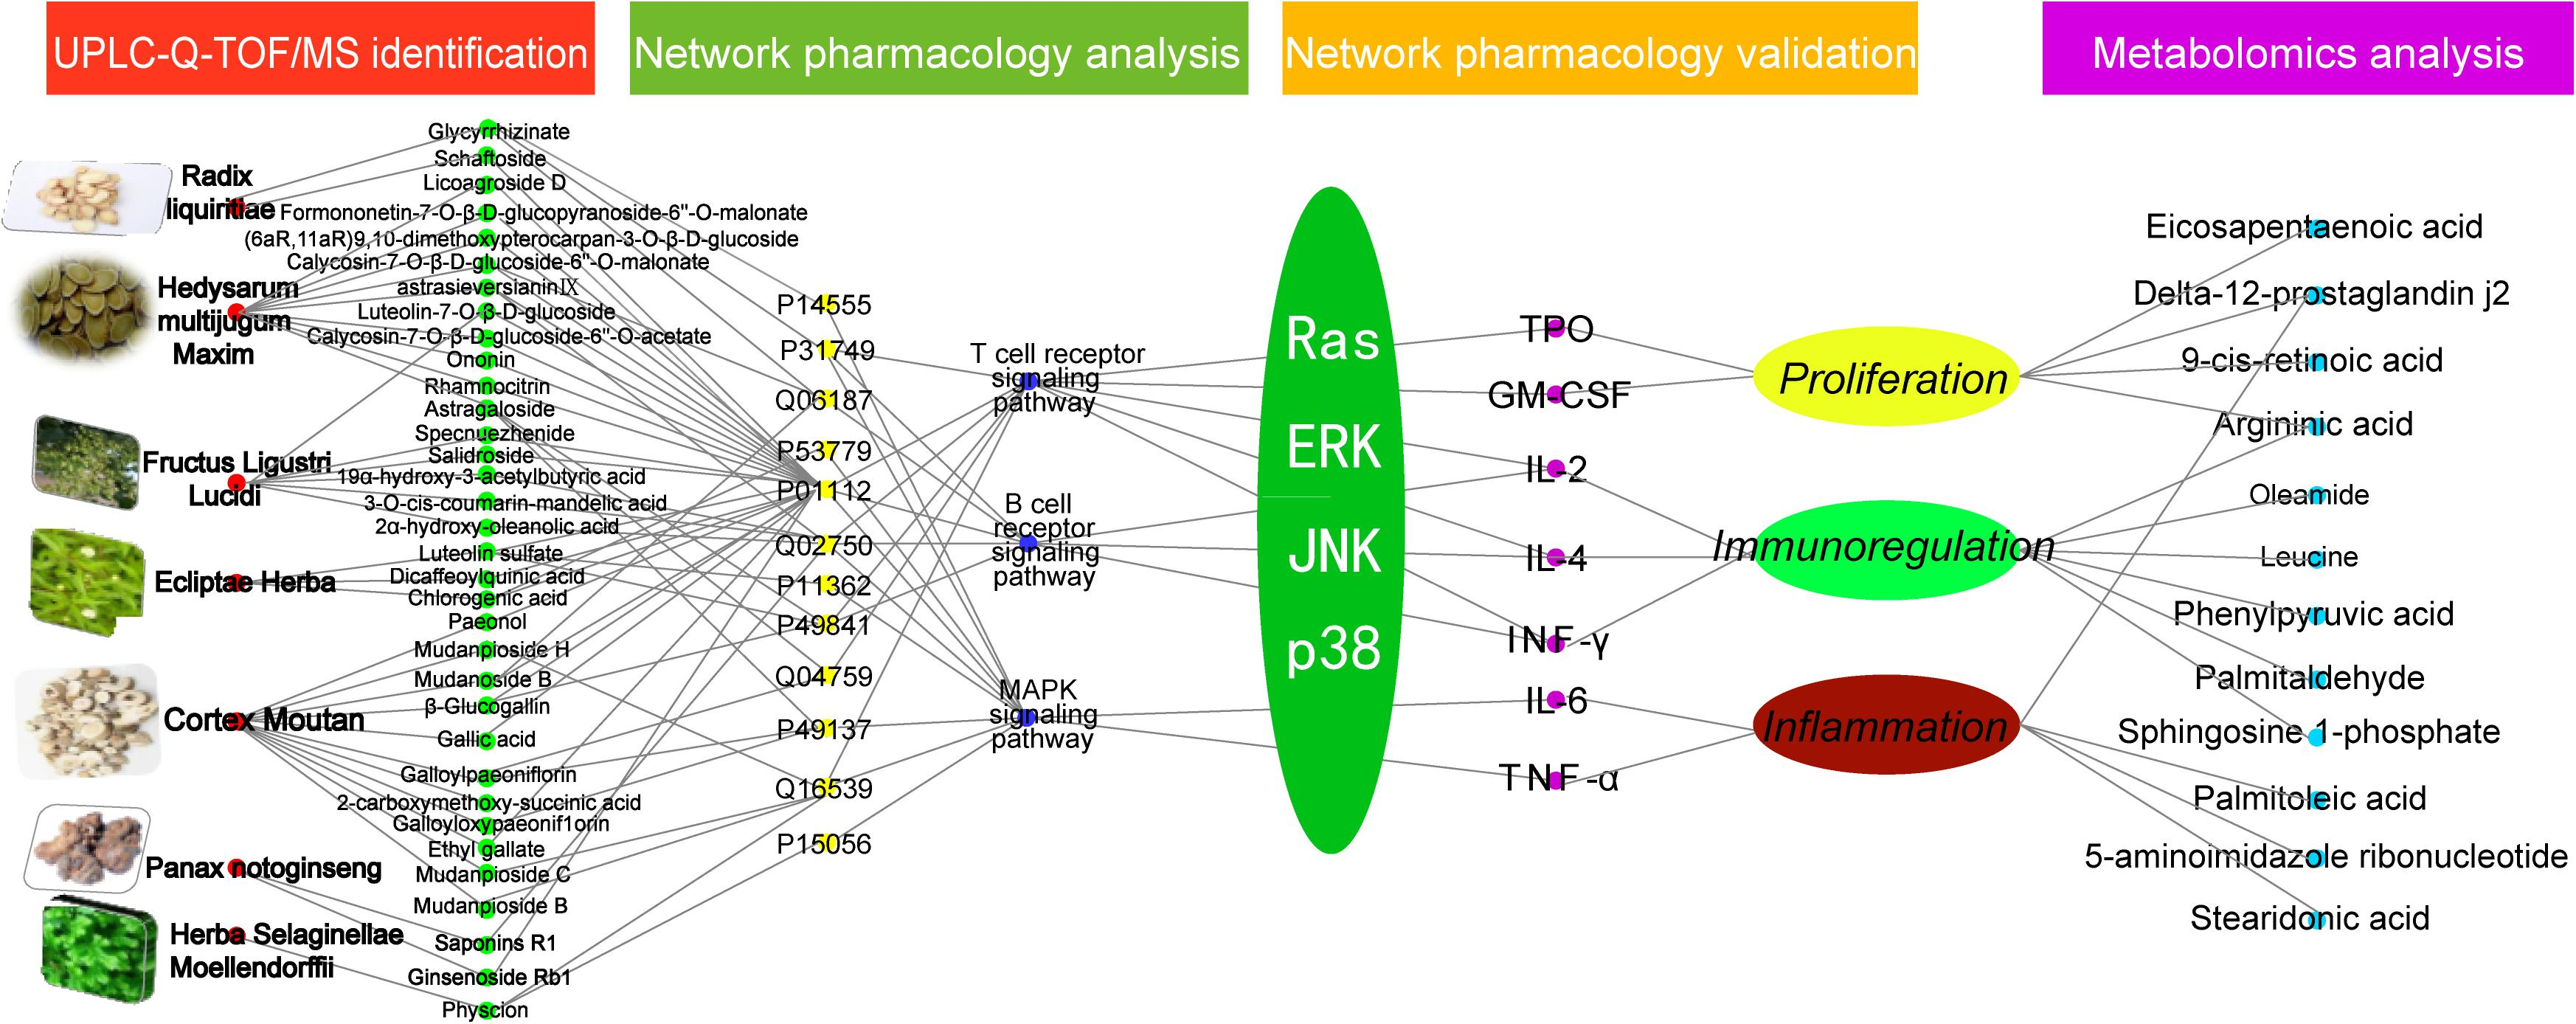 Frontiers | Integrated Network Pharmacology and Metabolomics